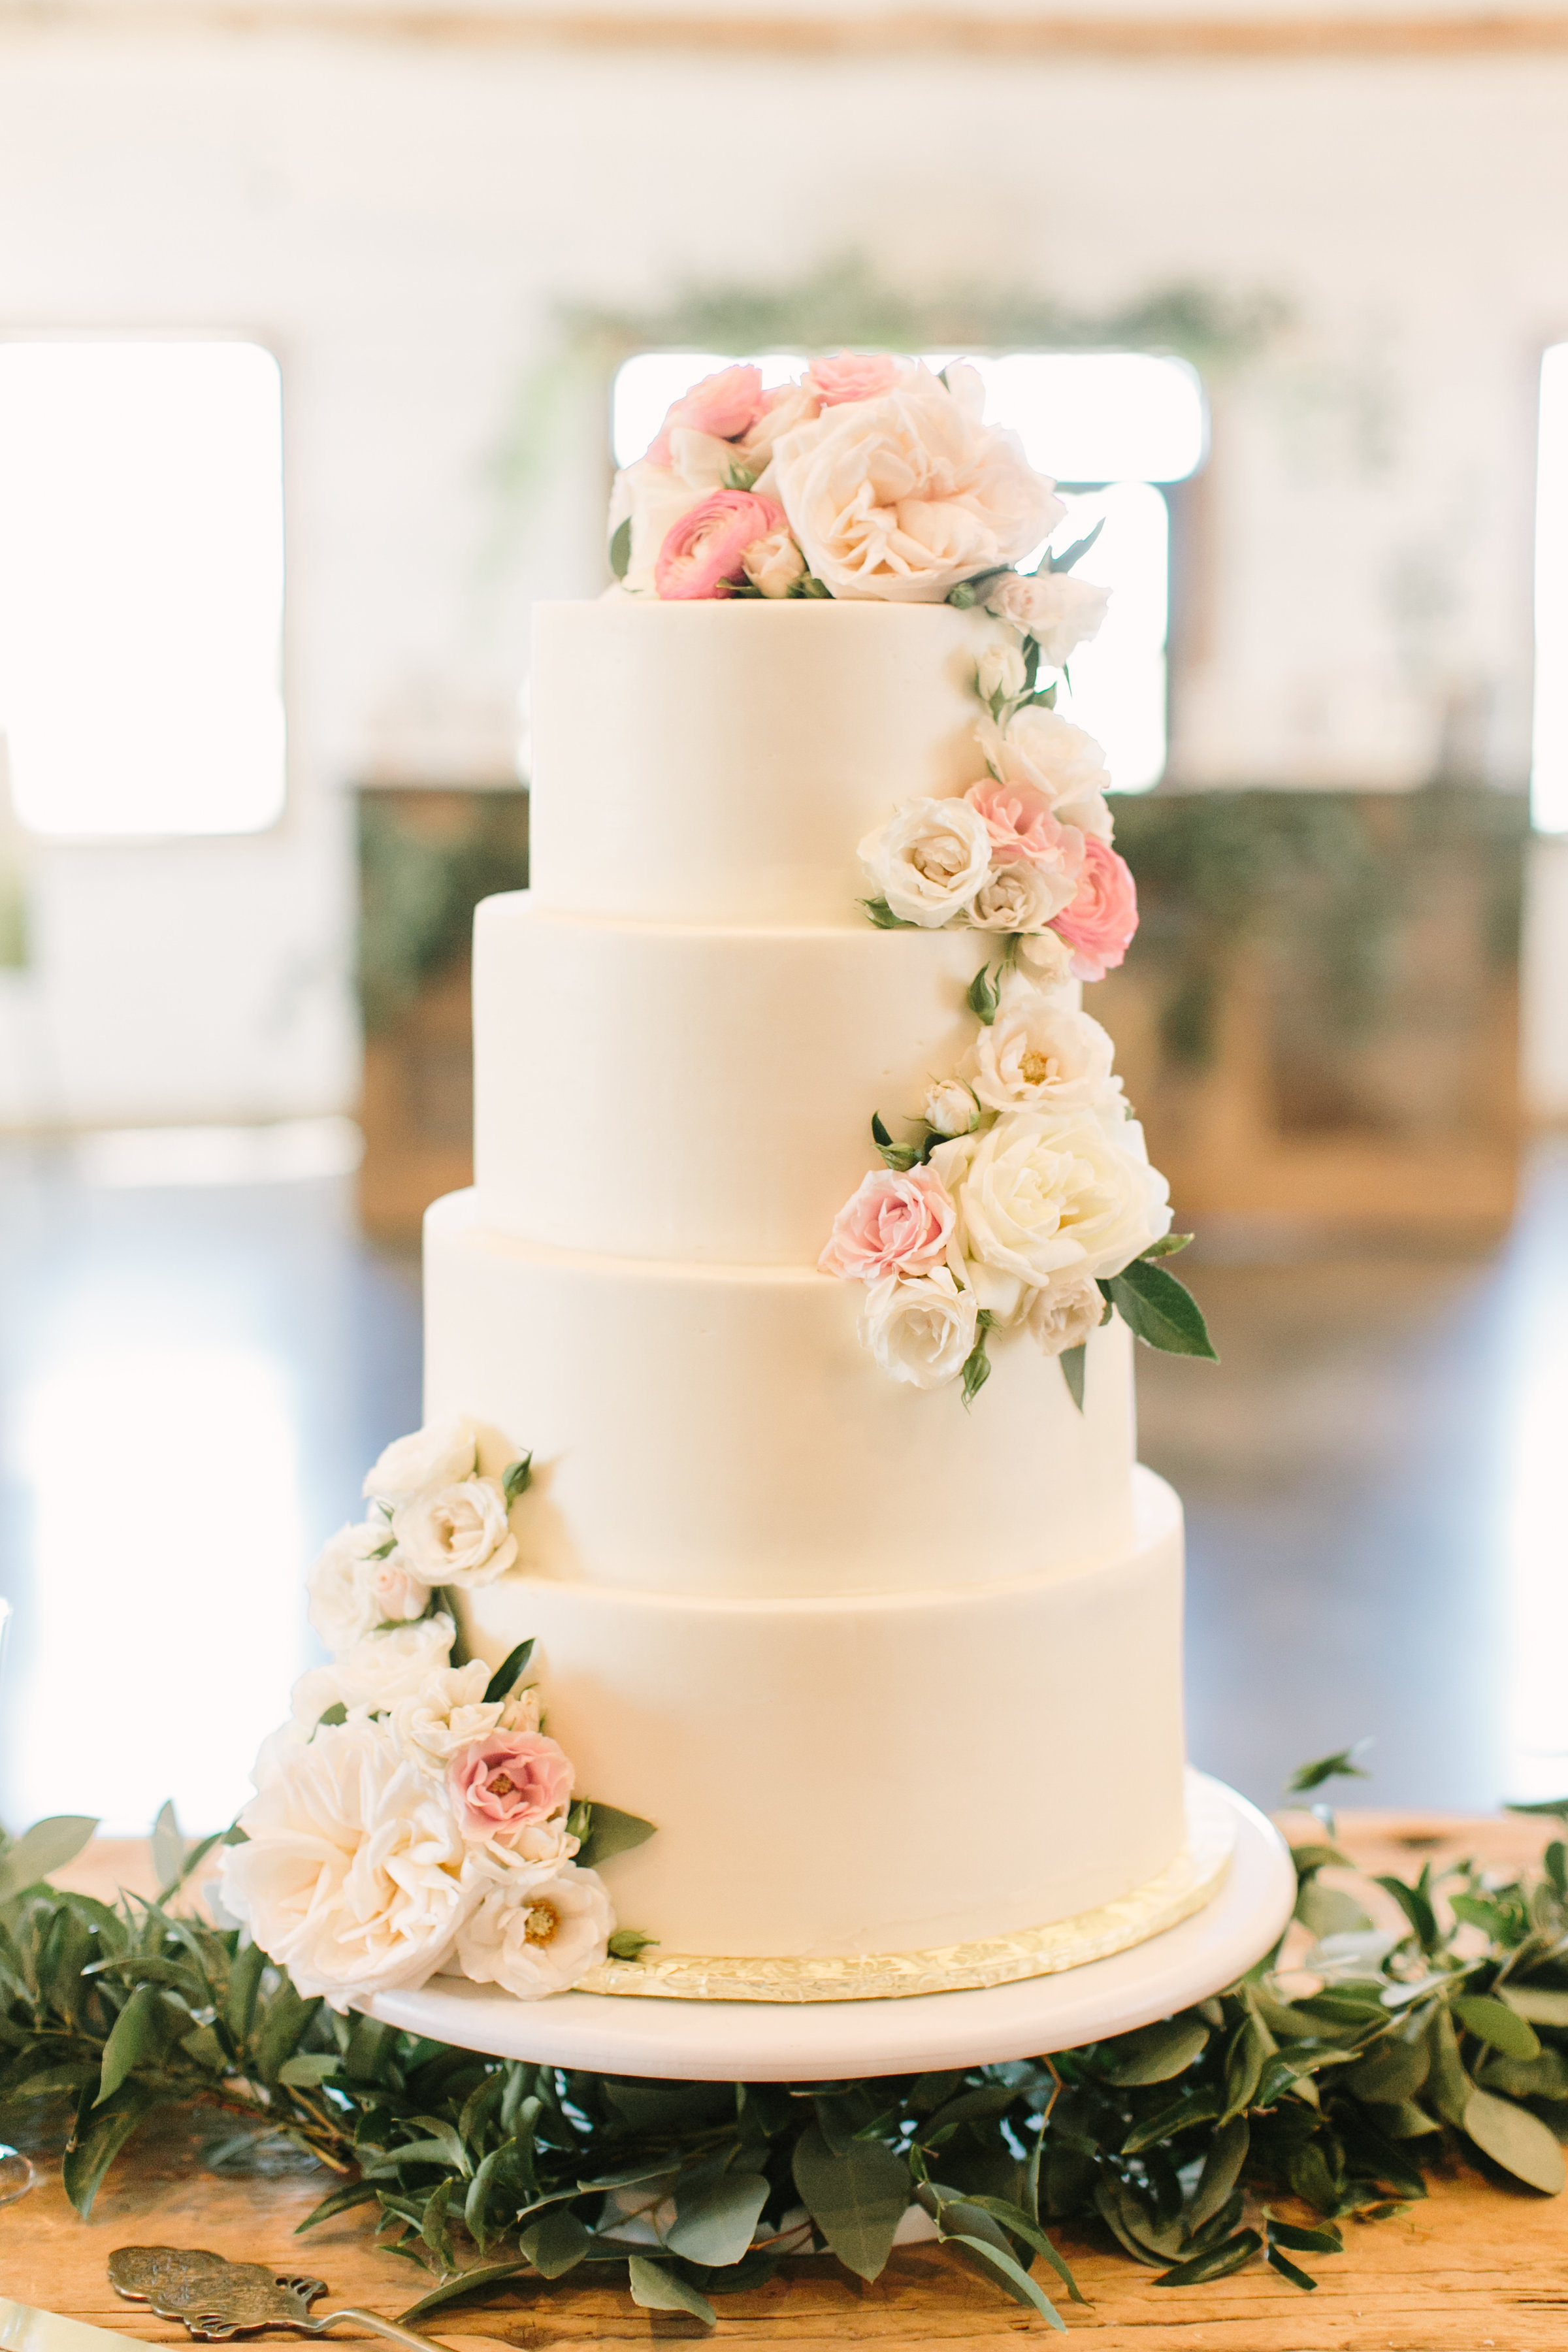 white wedding cake with blush florals and greenery by maxit flower design in houston texas